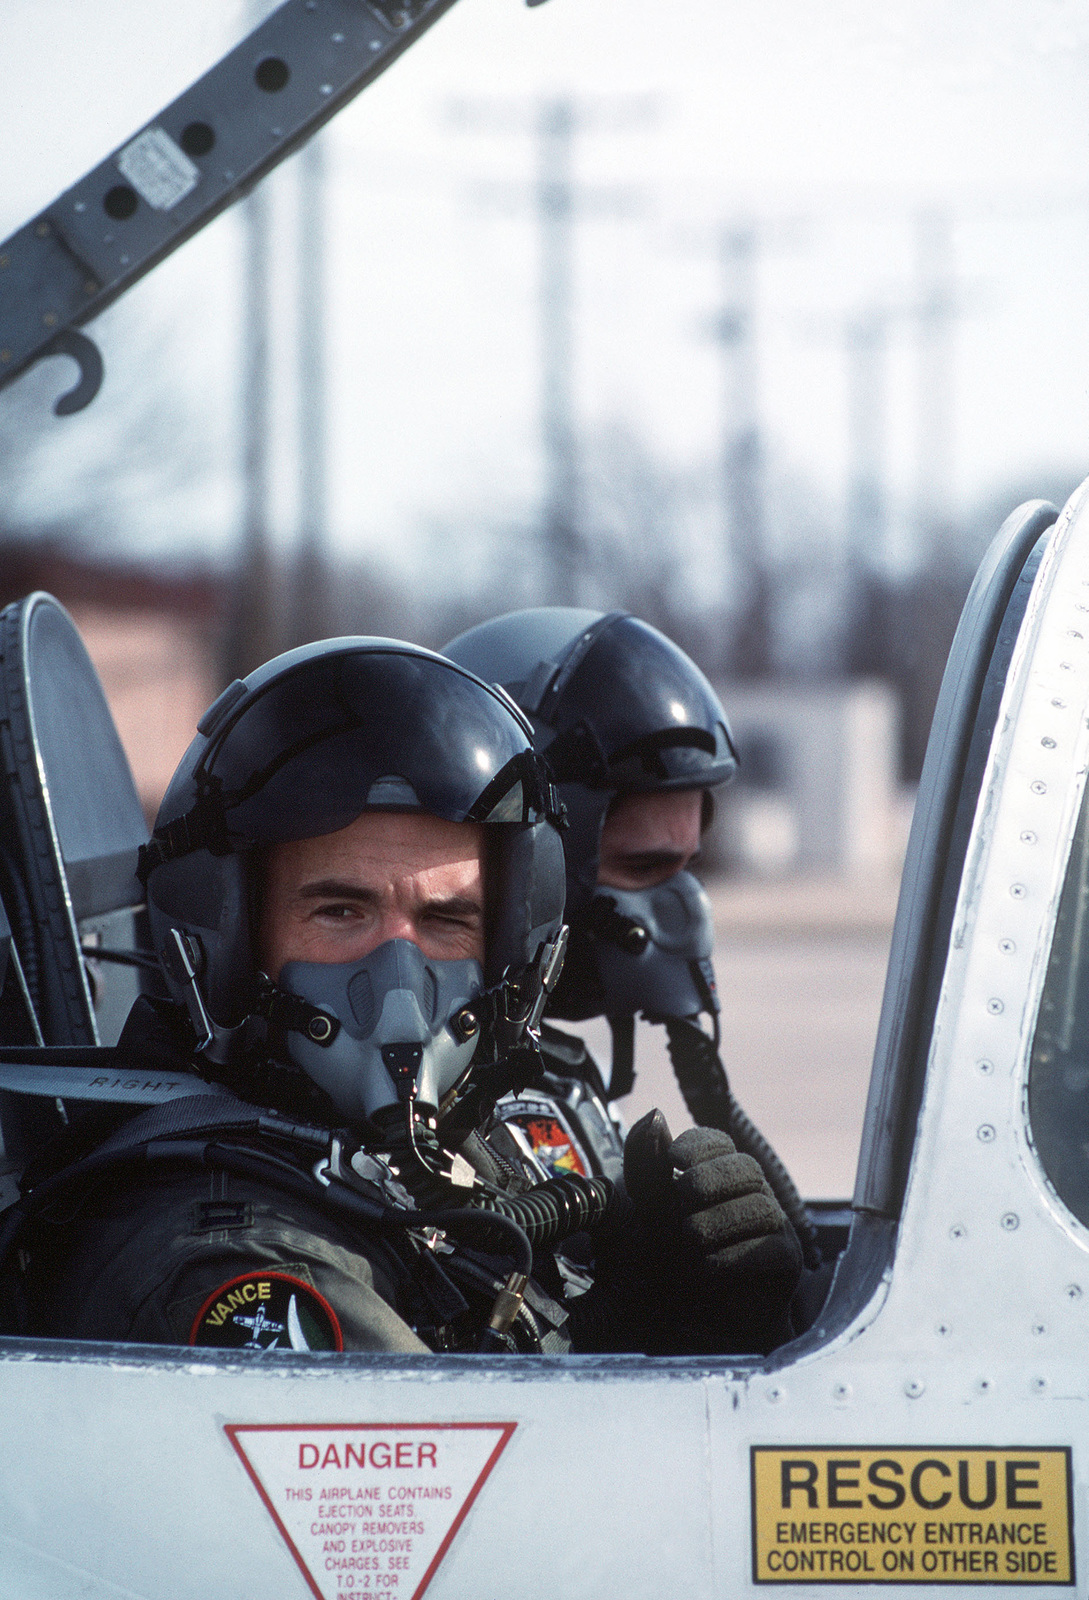 the reconnaissance mission of captain james s steward of the united states air force Technical sergeant john a chapman distinguished himself by extraordinary heroism as an air force special tactics combat controller, attached to a navy sea, air, and land (seal) team conducting reconnaissance operations in takur ghar, afghanistan, on march 4, 2002.